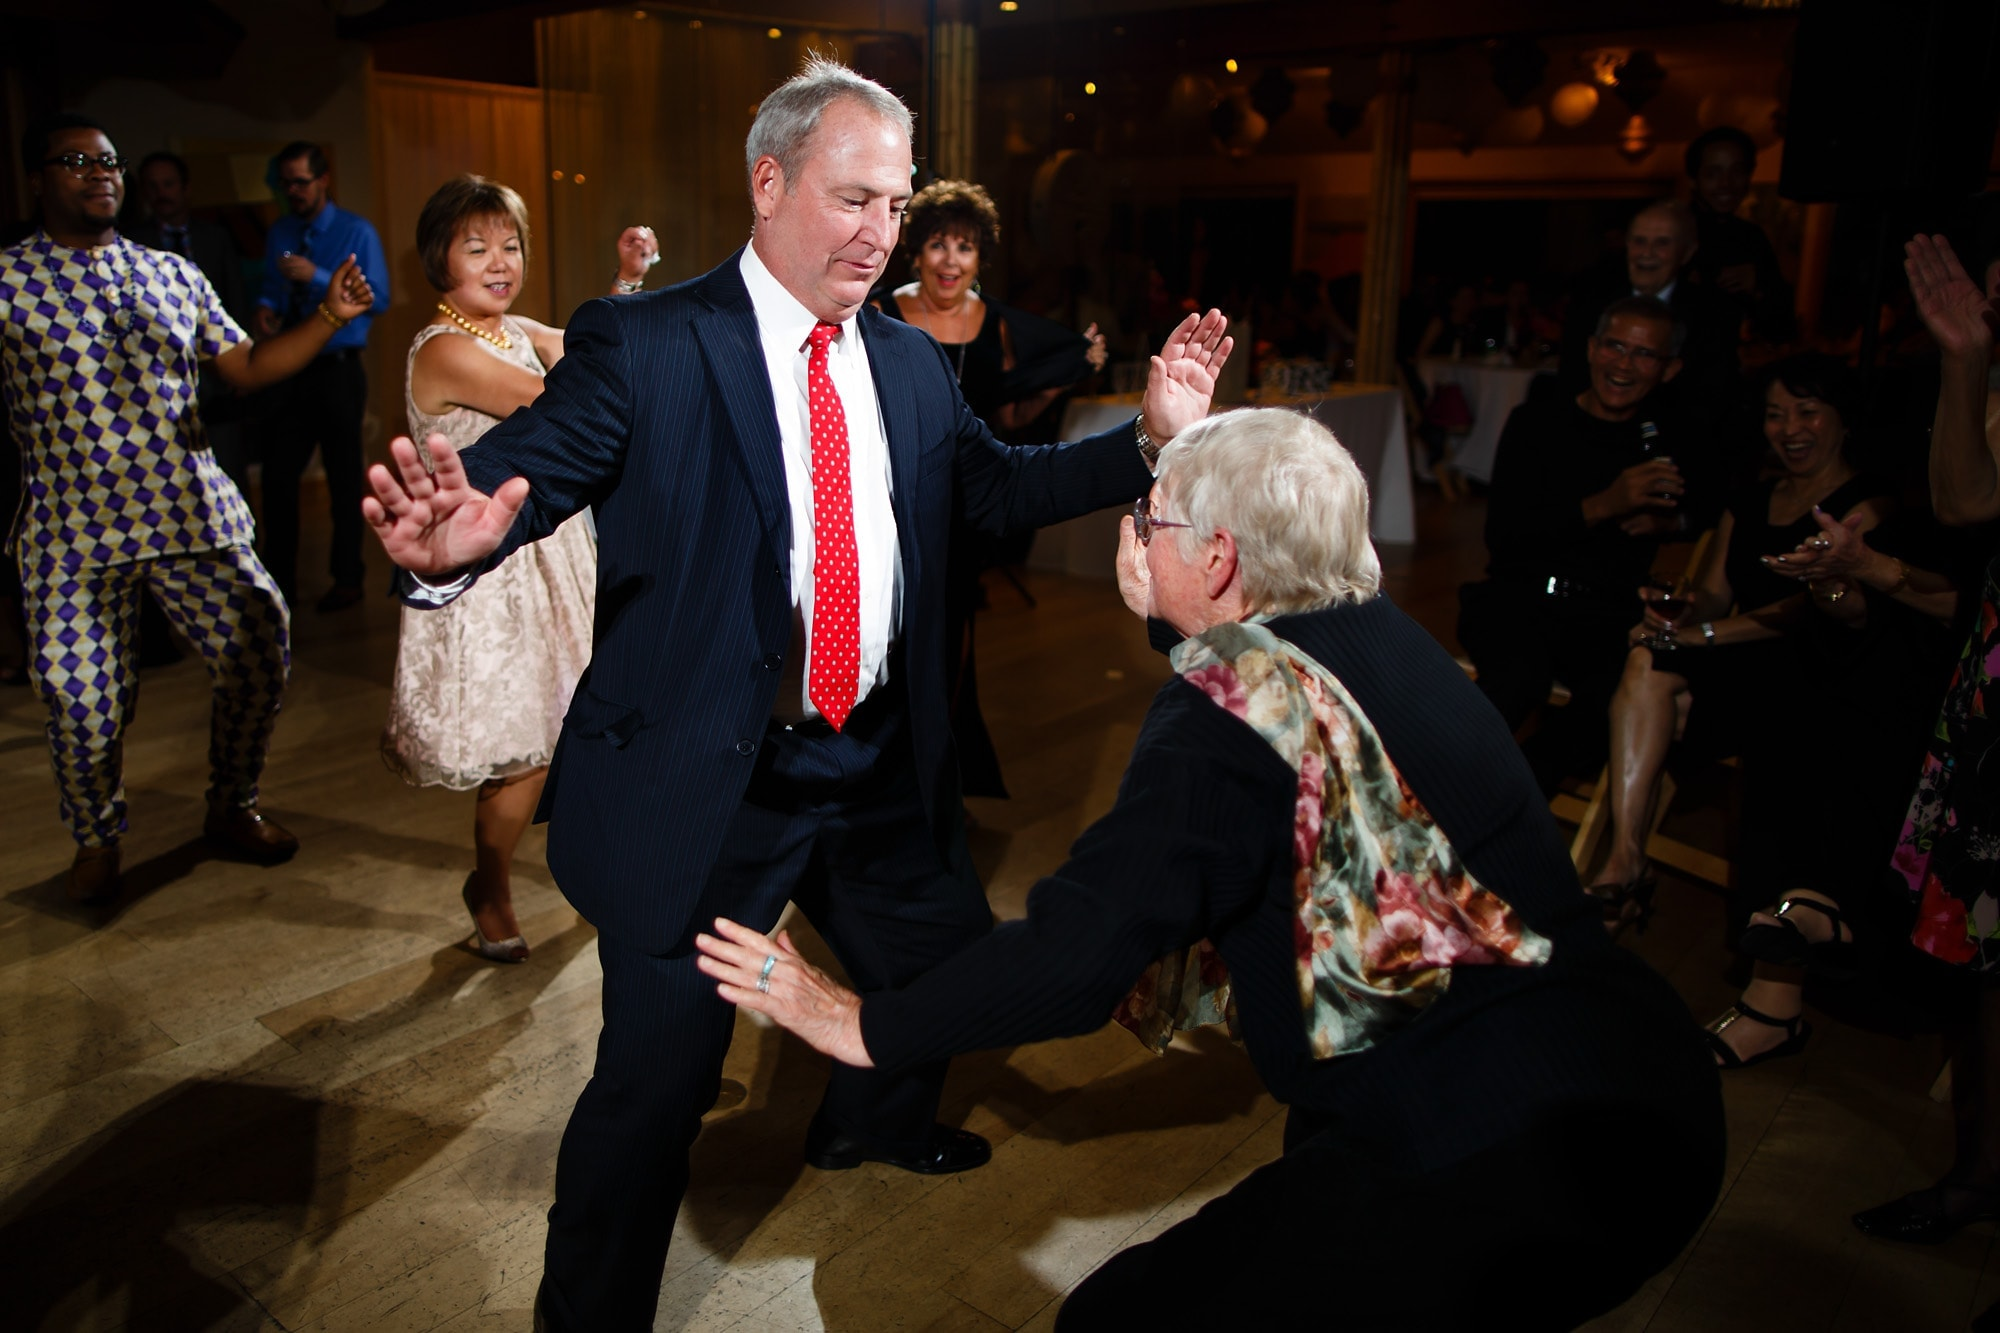 Guests dance at the wedding reception at Rembrandt Yard